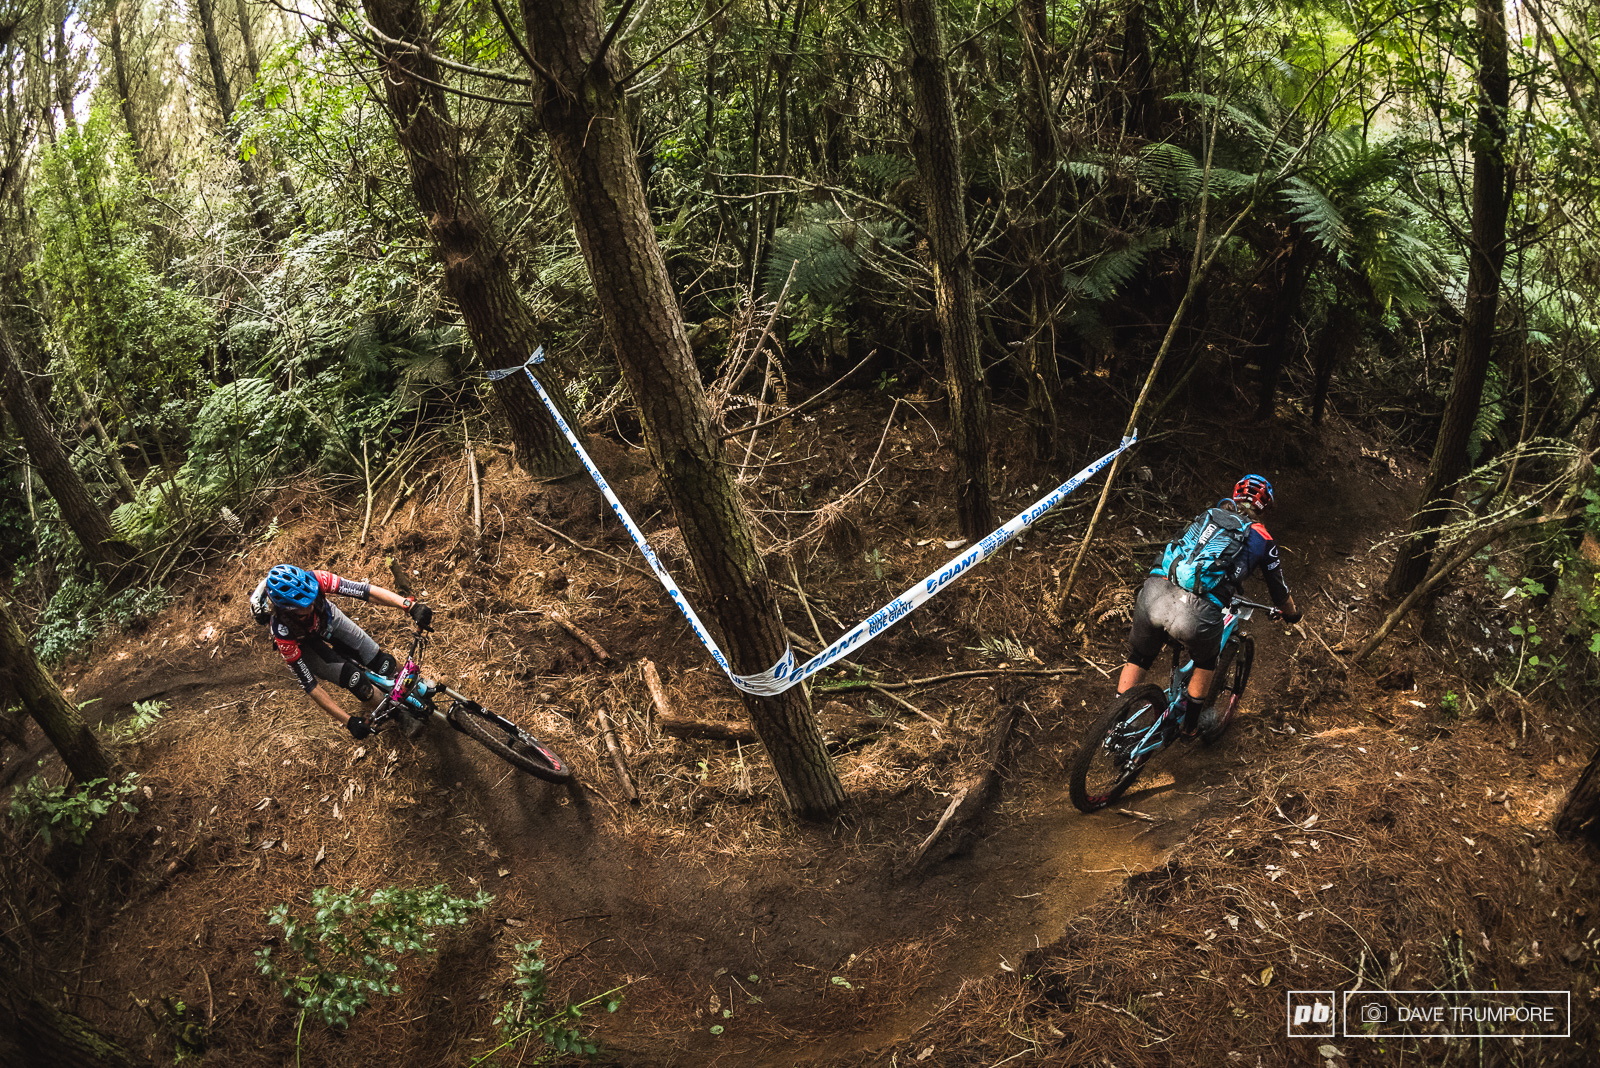 Twins Caro and Anita Gehrig thread their way through the twist and slippery corners that start off stage 2